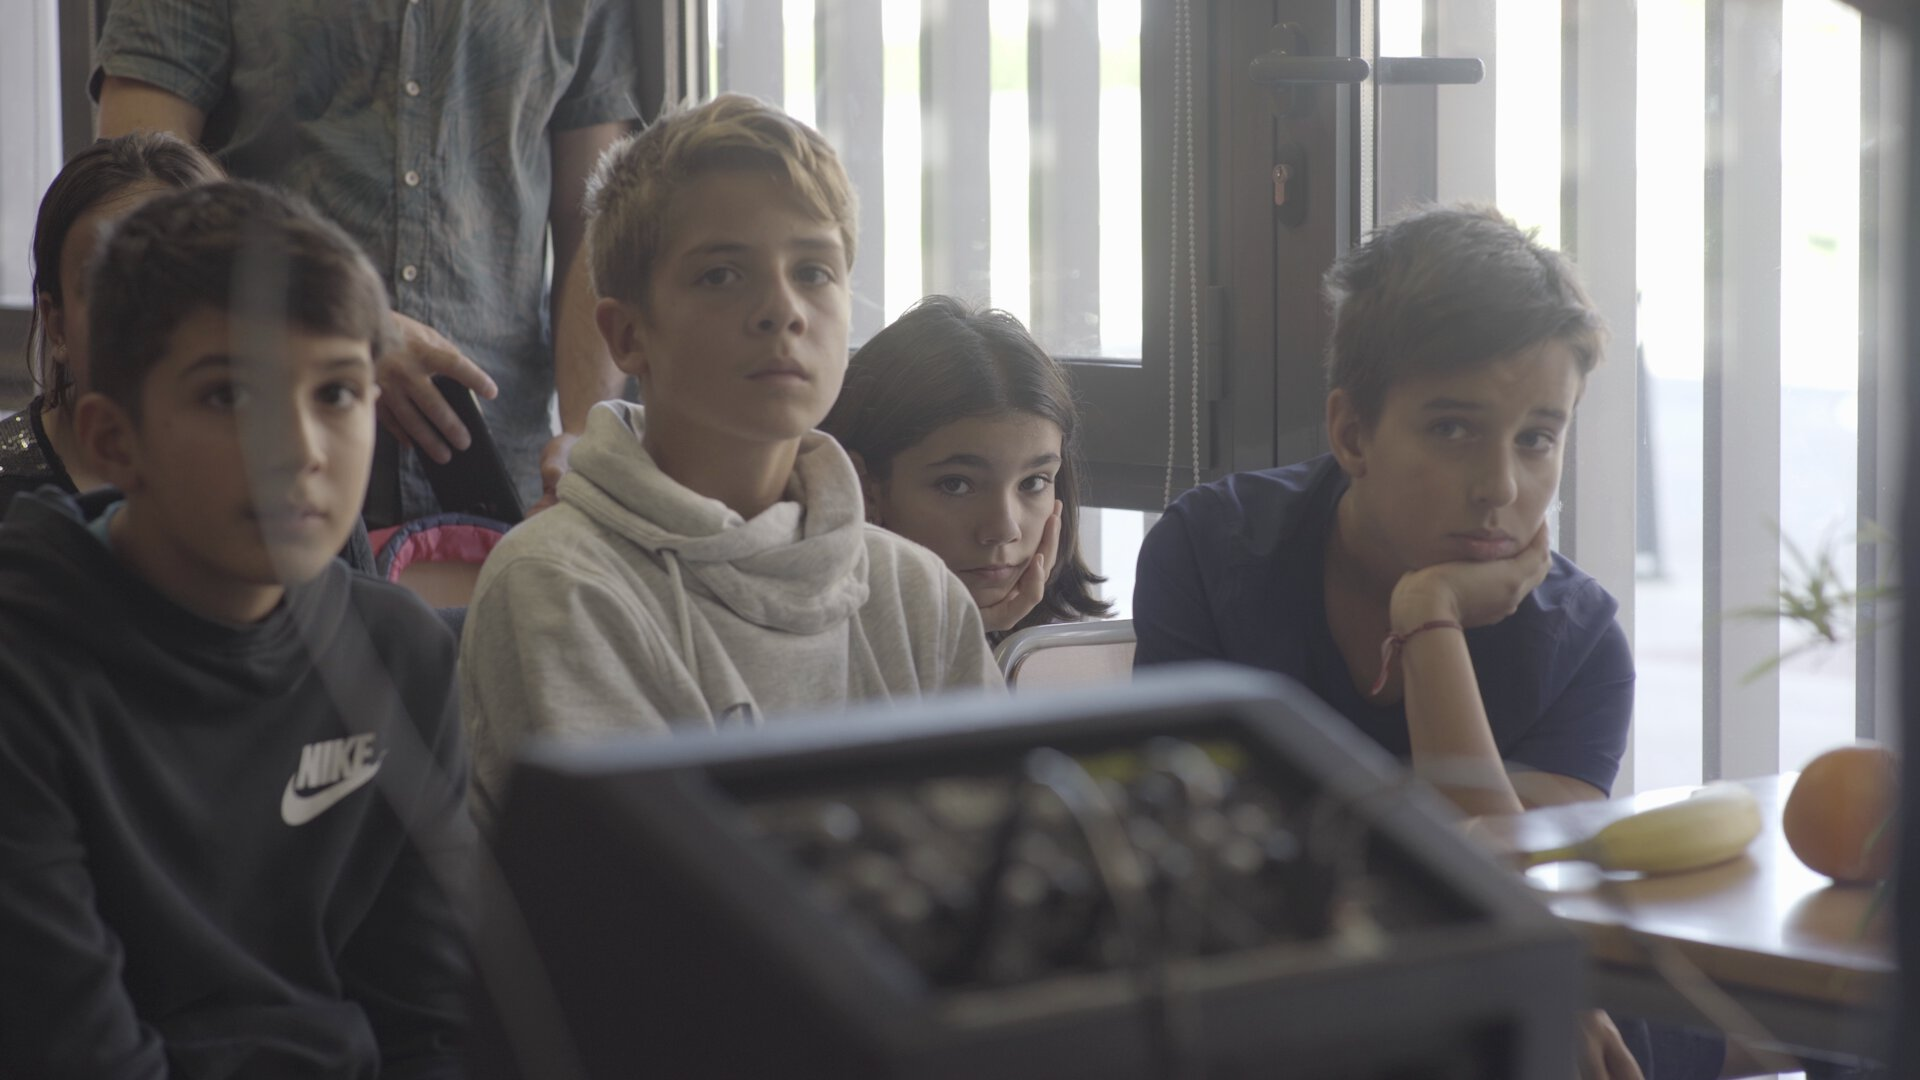 Five children/teens sitting in a classroom looking beyond the camera